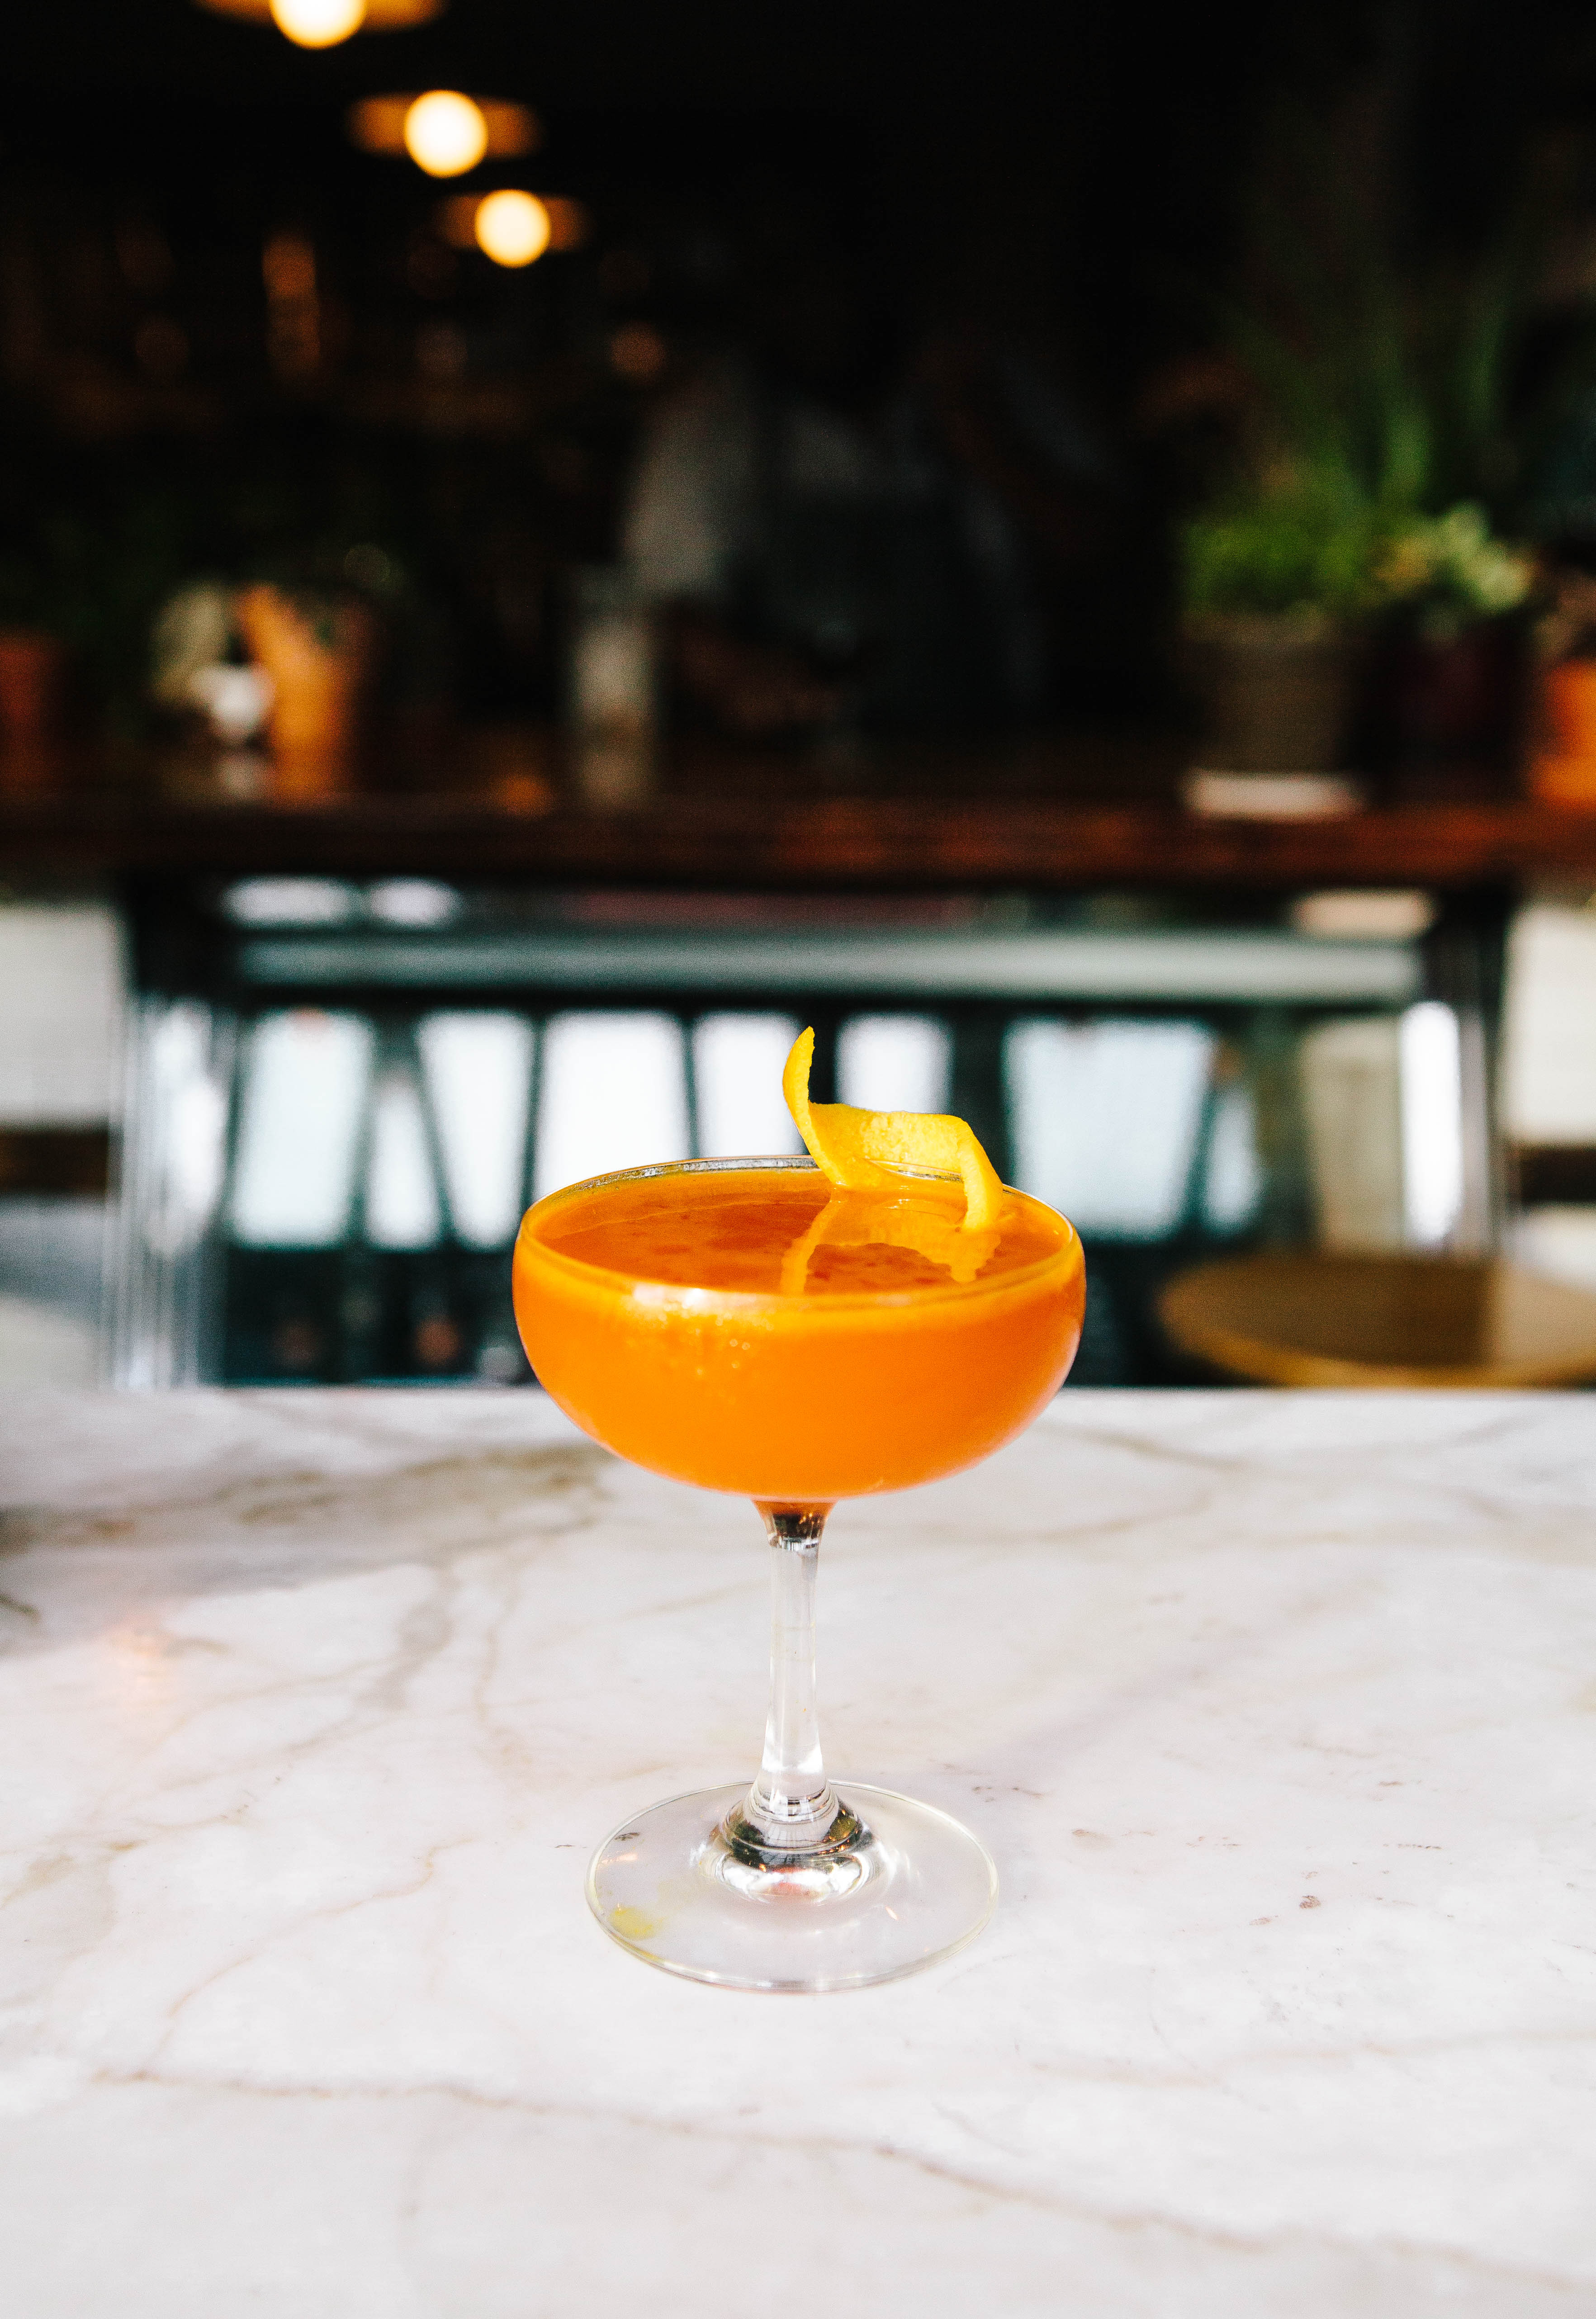 The Golden Shrub, from The Wild Son's low-abv cocktail program.